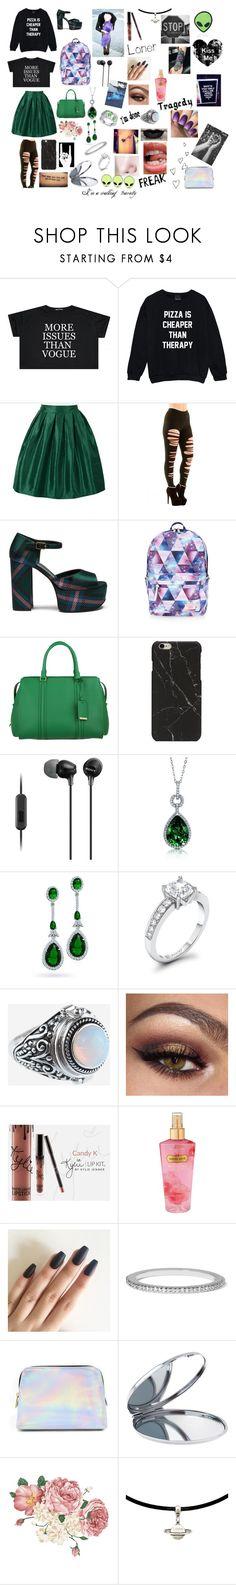 """""""Give me therapy, I'm a walking travesty. But I'm smiling at everything"""" by mrsromangodfrey ❤ liked on Polyvore featuring WithChic, Mulberry, Accessorize, BOSS Hugo Boss, Sony, BERRICLE, Bling Jewelry, Rock 'N Rose, Victoria's Secret and Monica Vinader"""